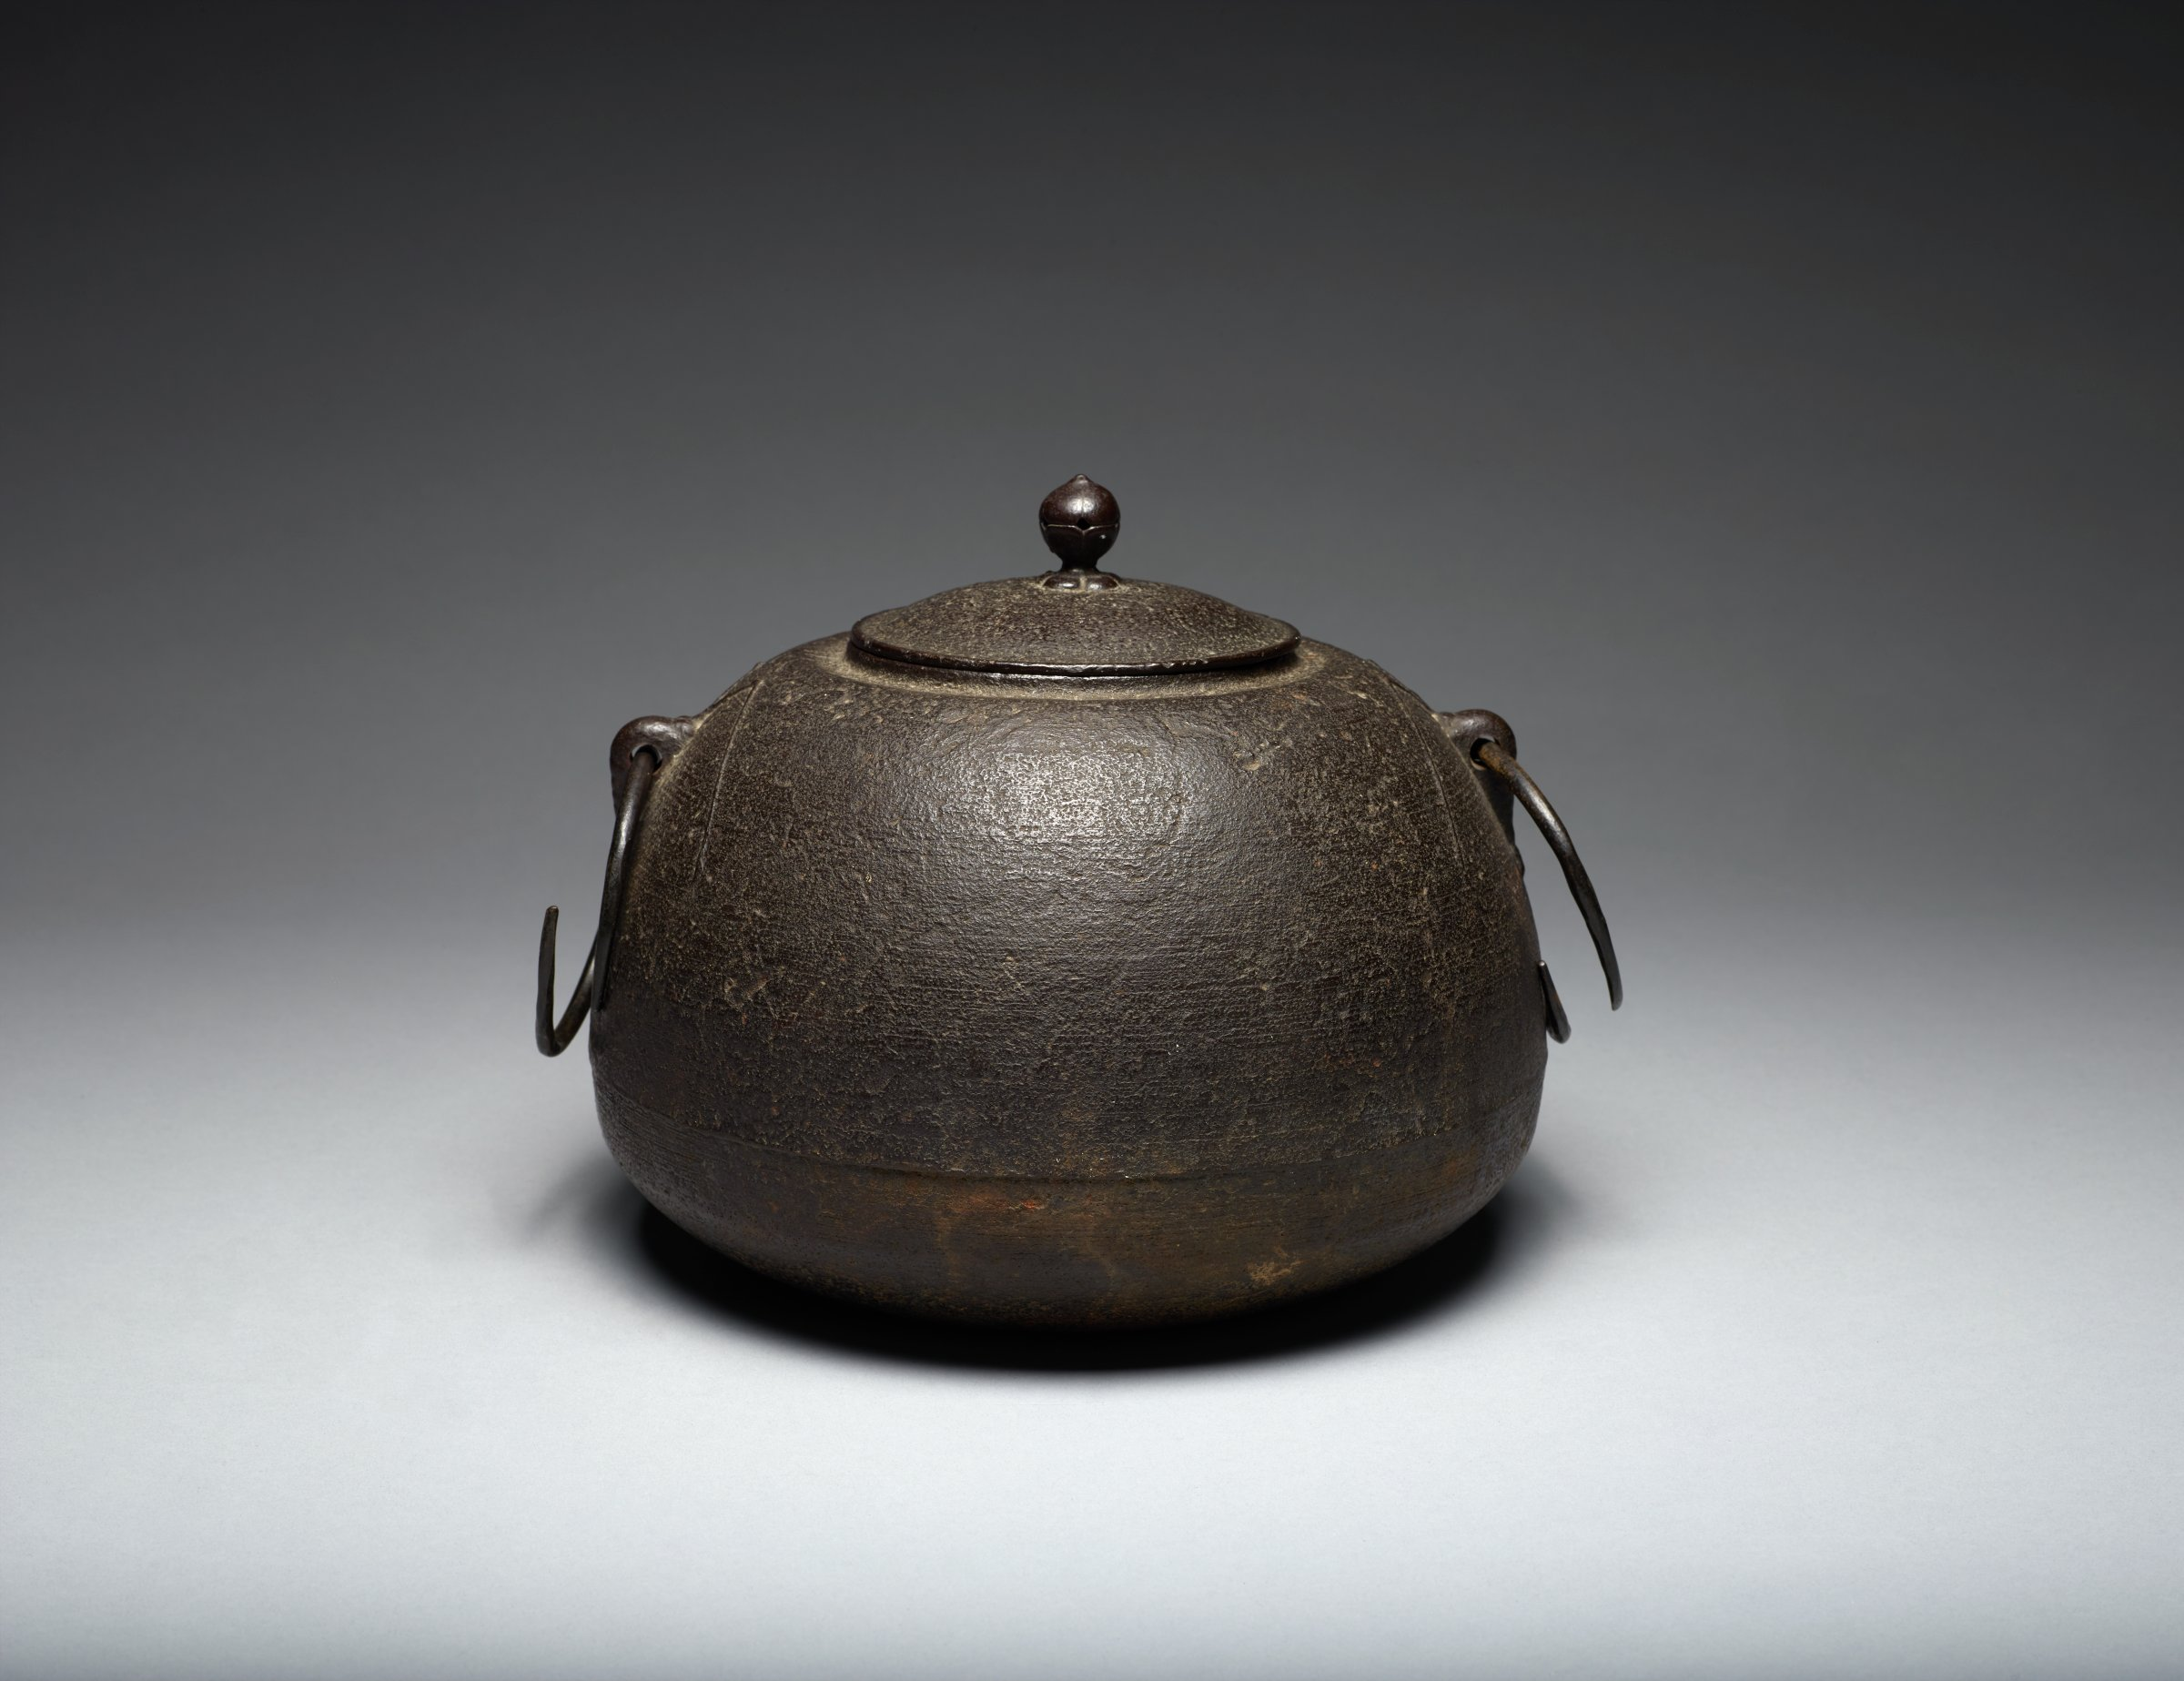 Kama Iron Kettle with Shrimp Handle Motifs and lotus bud finial on cover. Removable rings. Makers mark is cast into the piece.